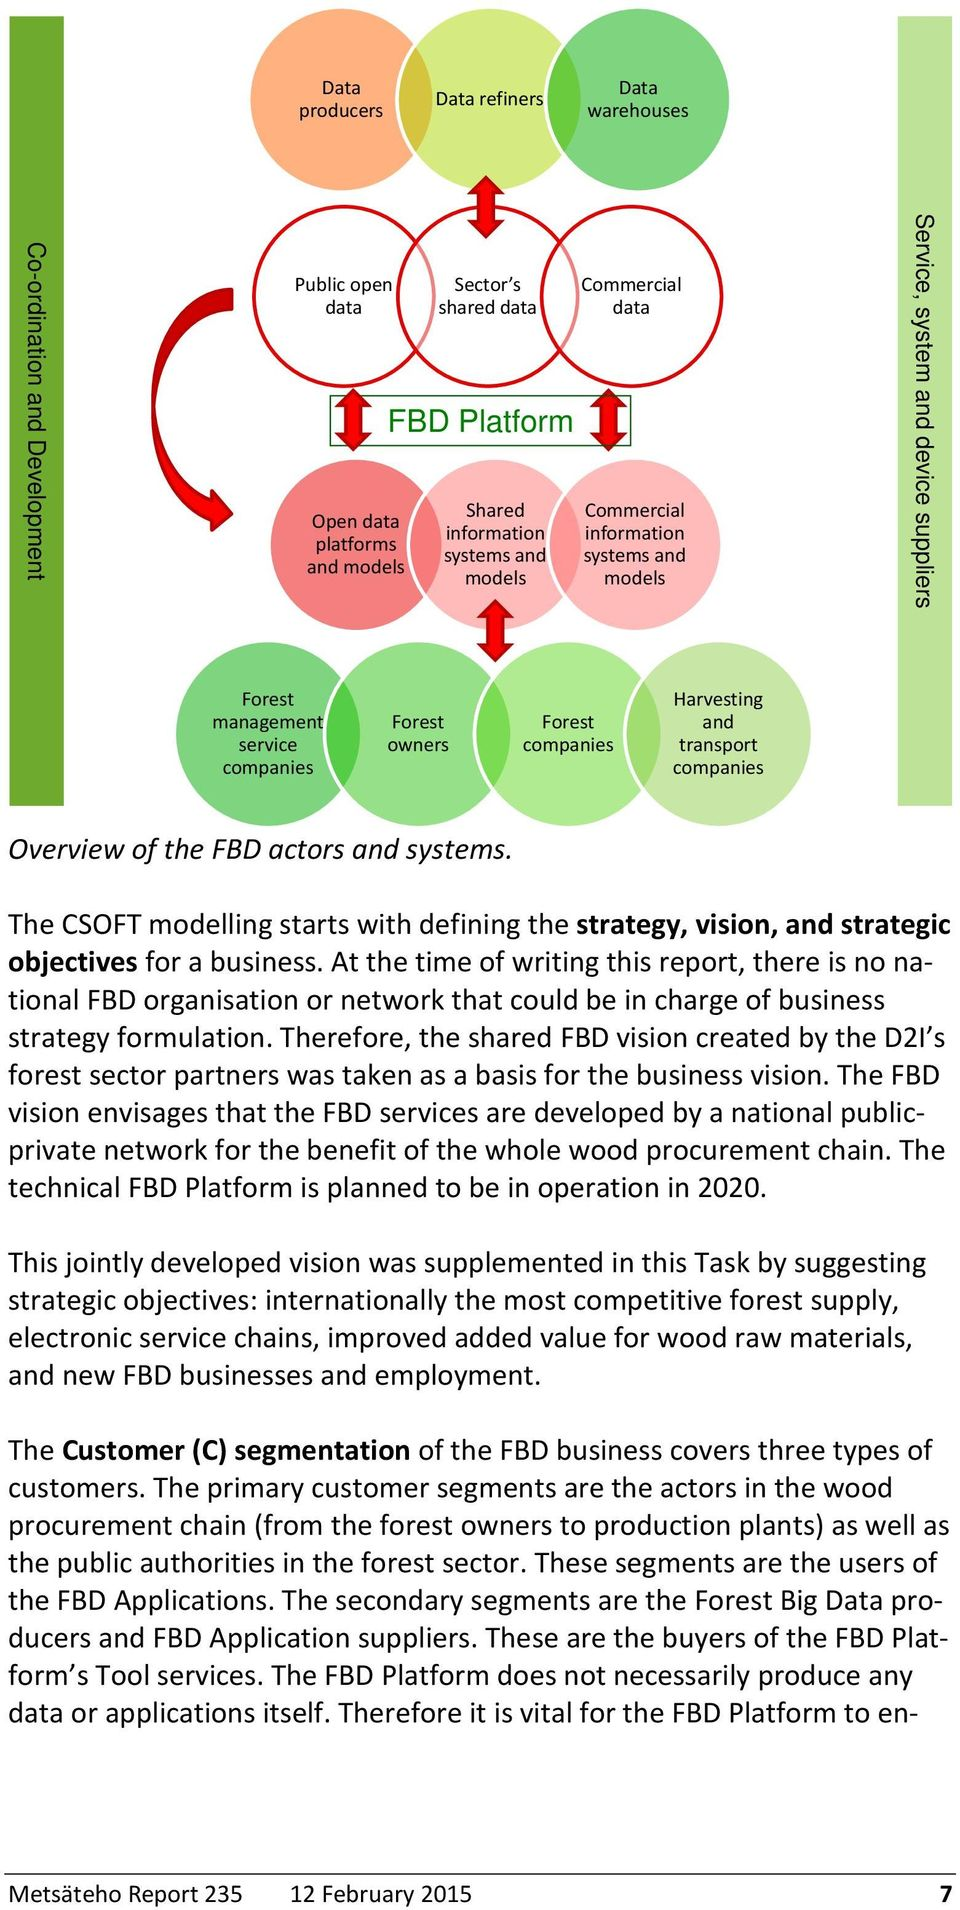 Overview of the FBD actors and systems. The CSOFT modelling starts with defining the strategy, vision, and strategic objectives for a business.